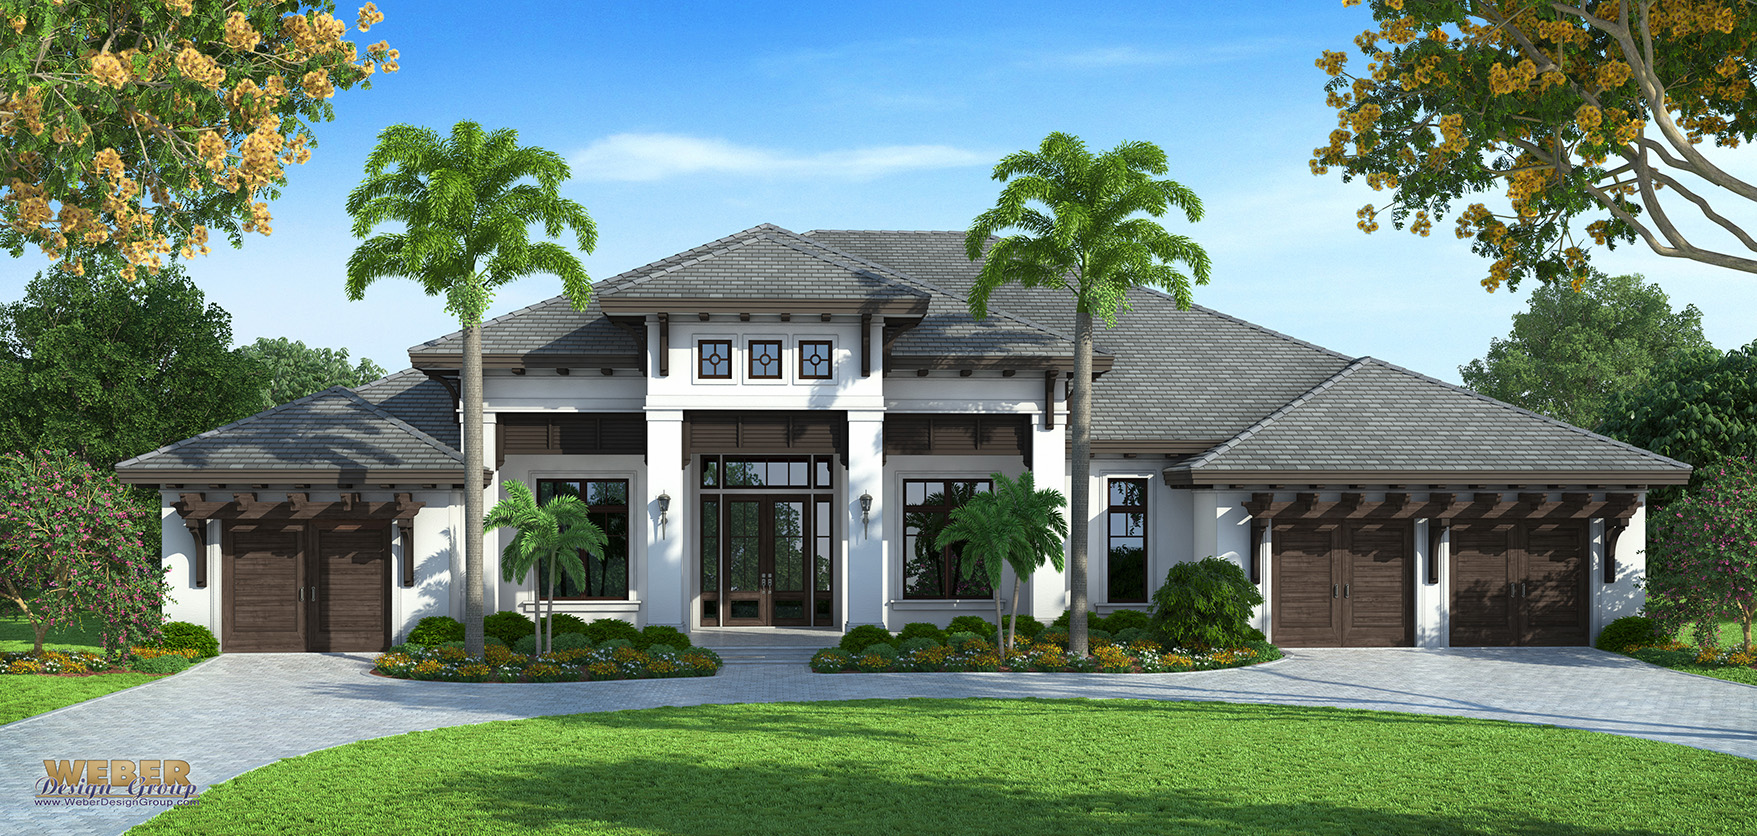 Caribbean house plans caribbean style architecture for Stock home plans